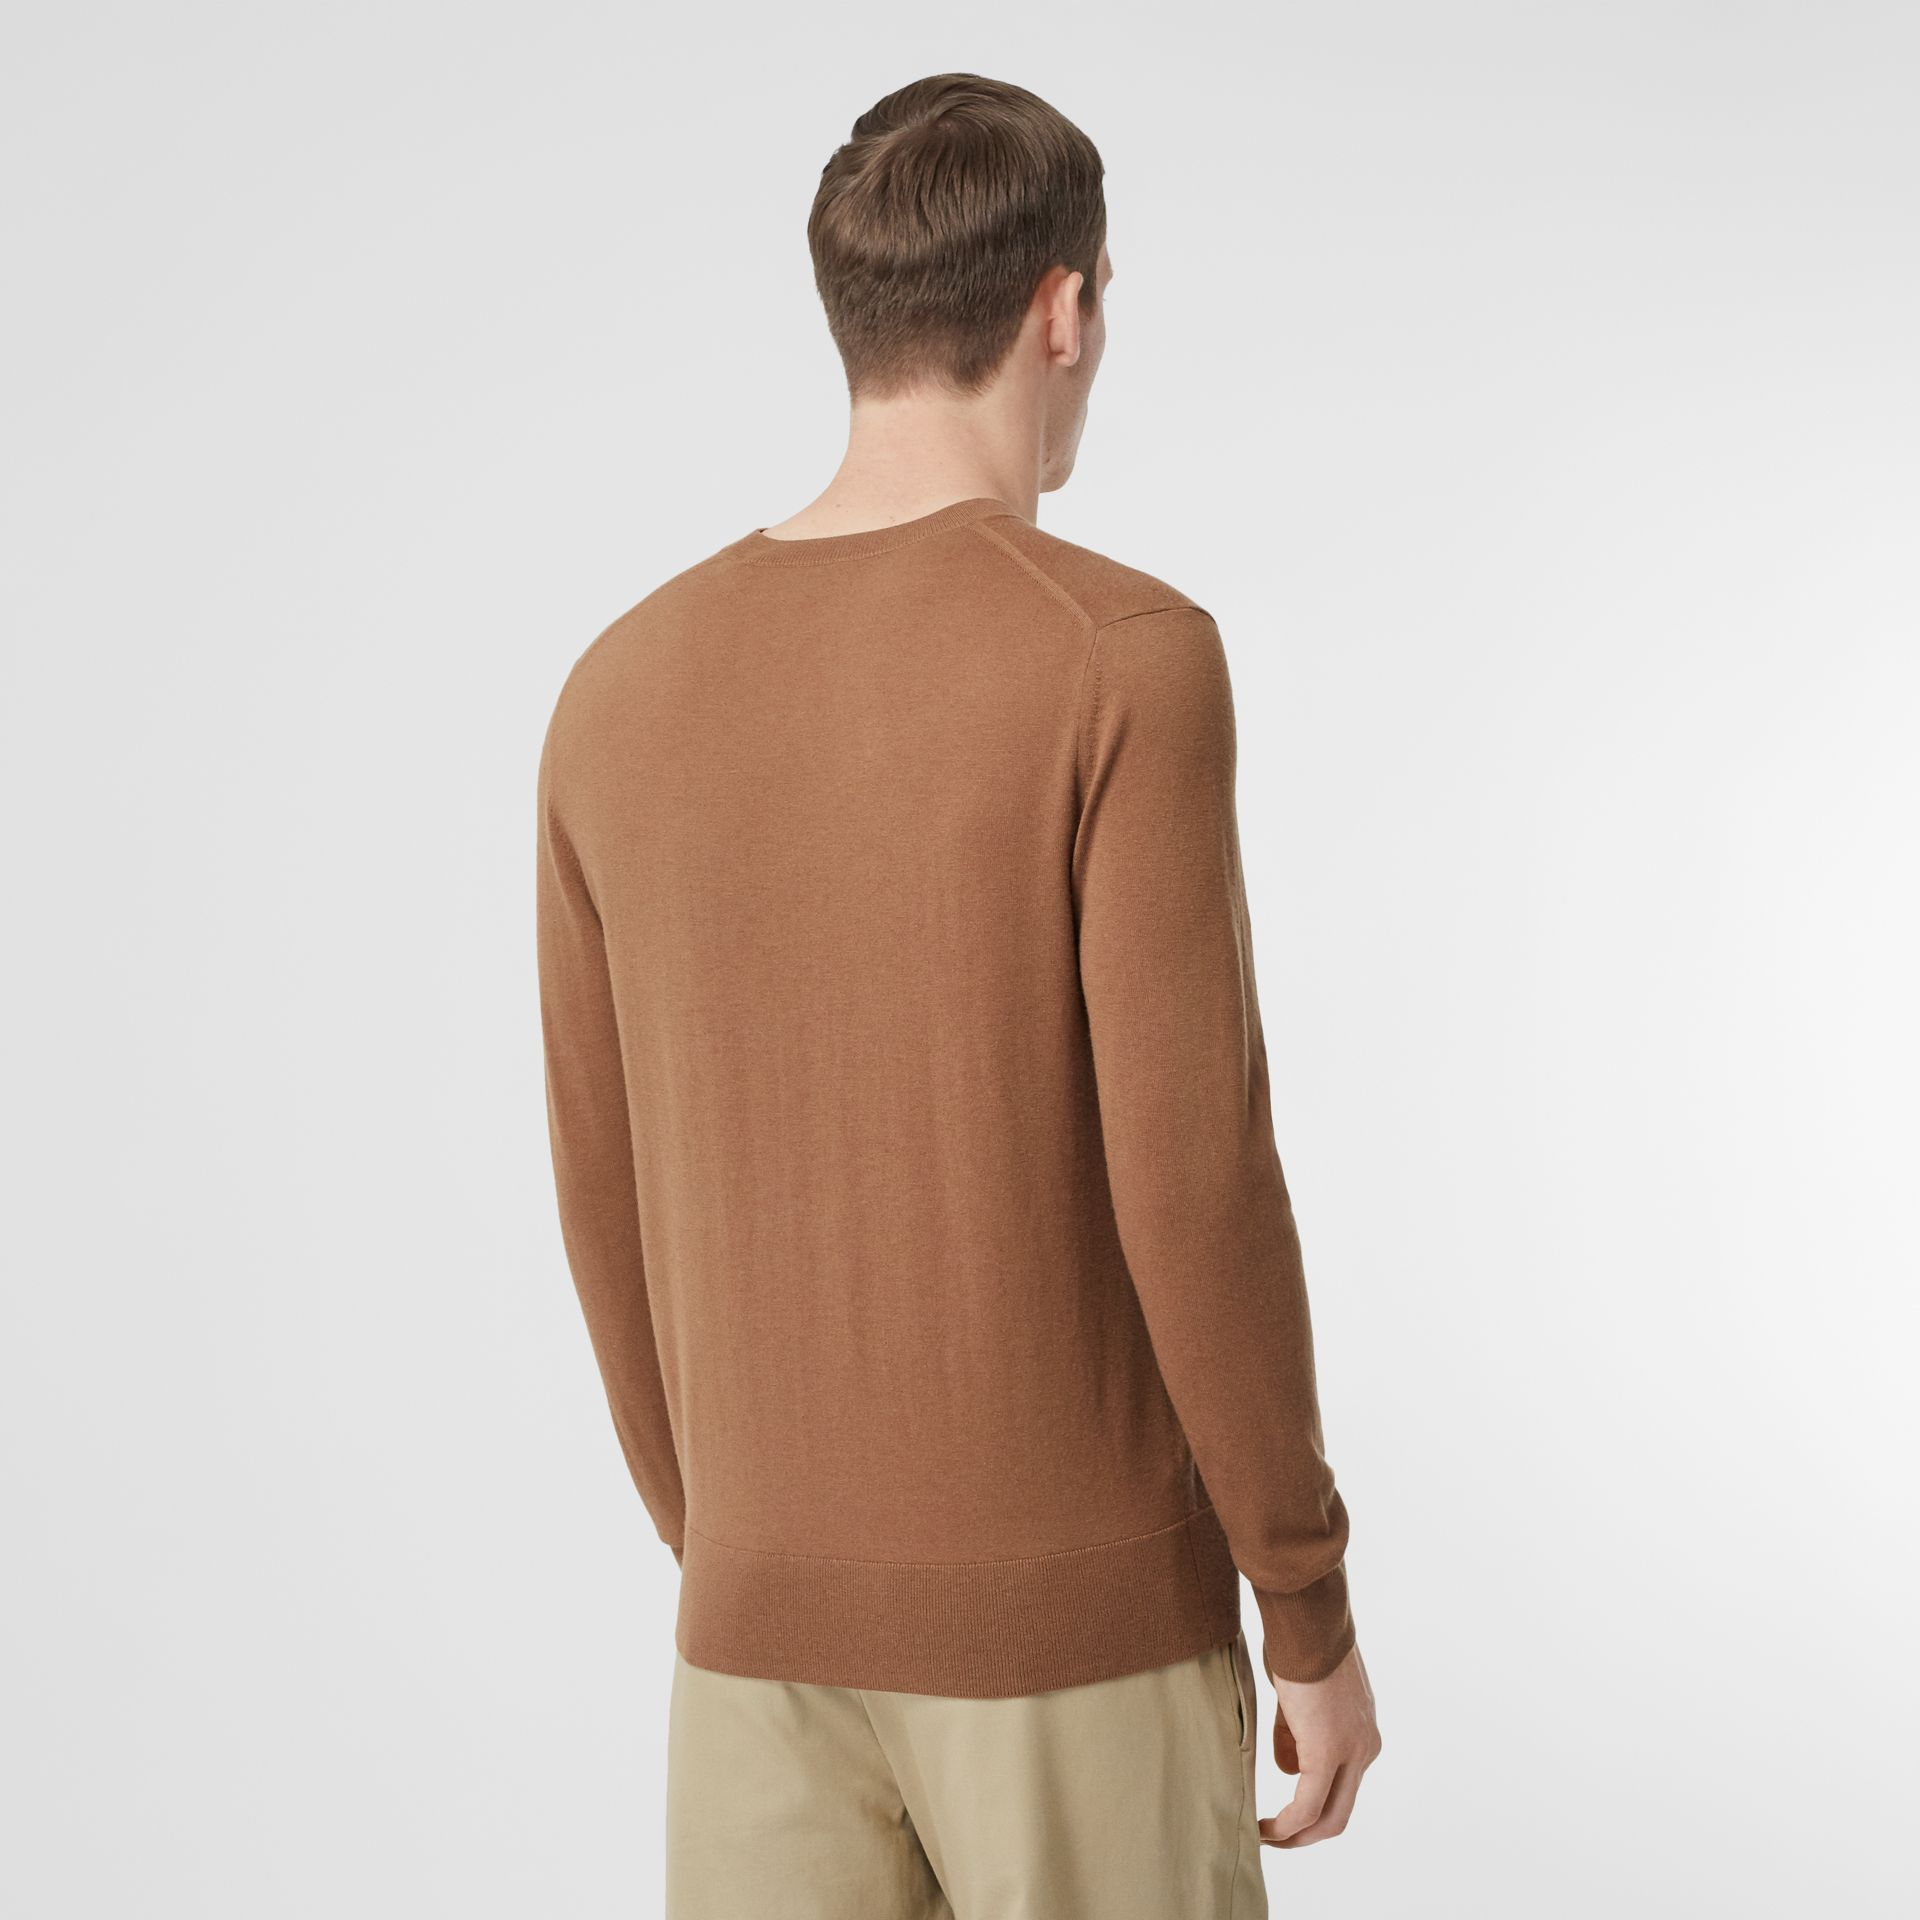 Monogram Motif Cashmere Sweater in Maple - Men | Burberry - gallery image 2